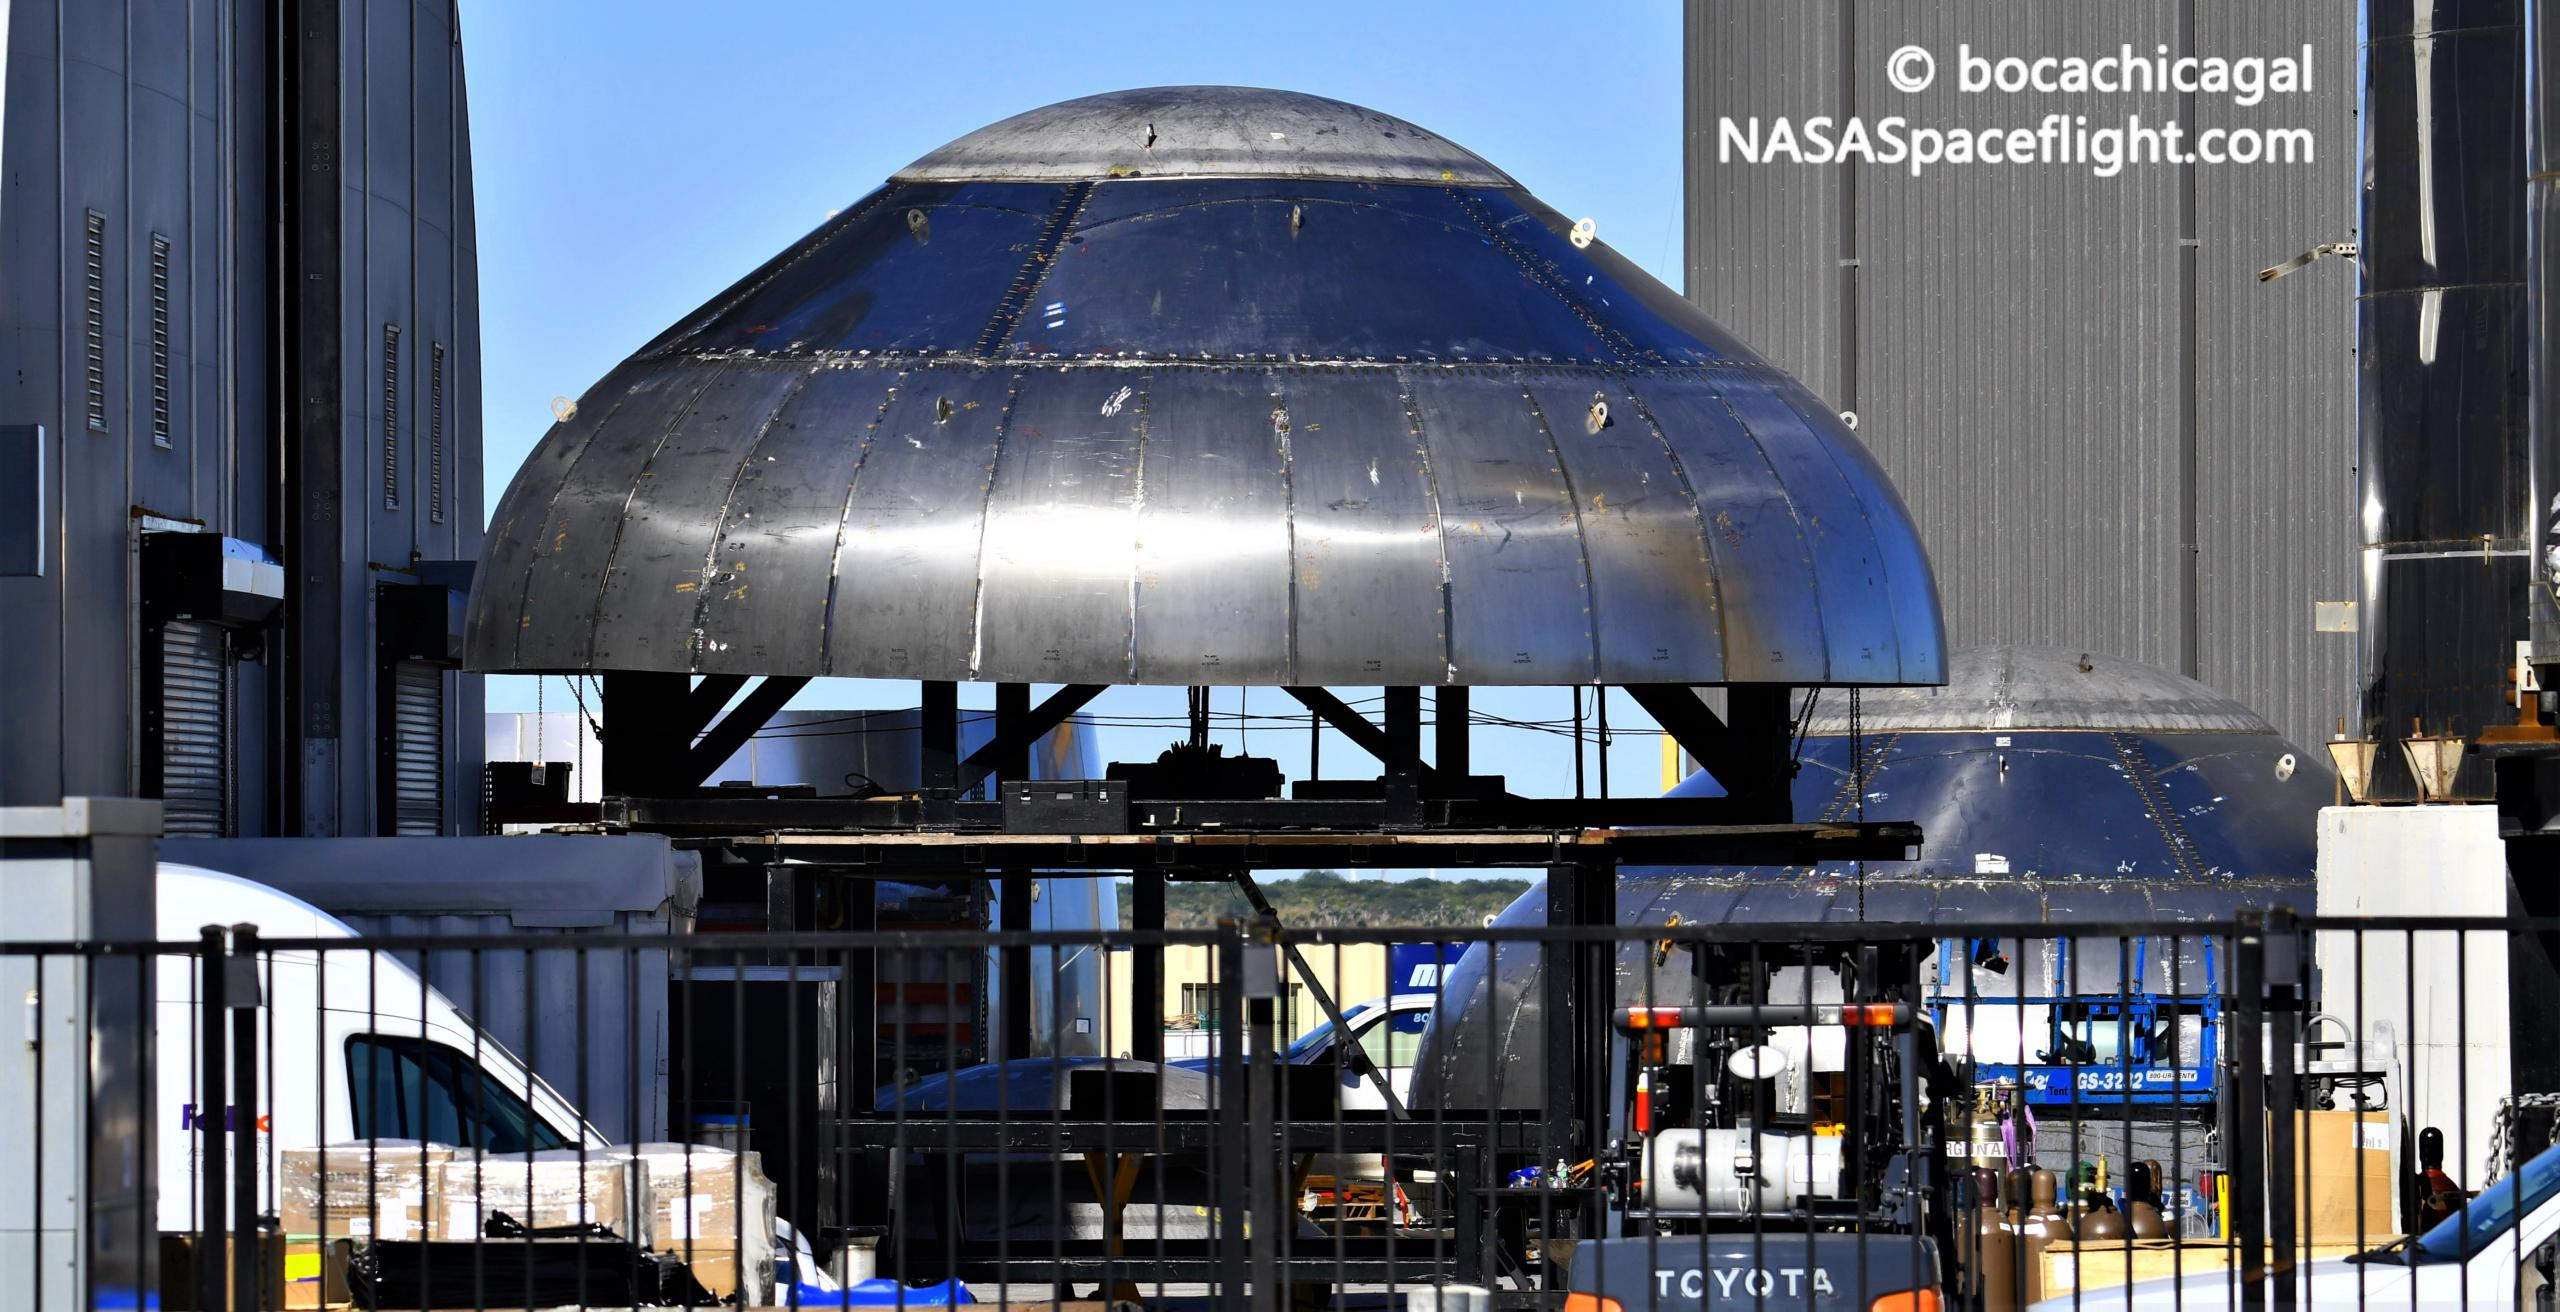 Starship Boca Chica 120720 (NASASpaceflight – bocachicagal) forward domes 1 crop (c)